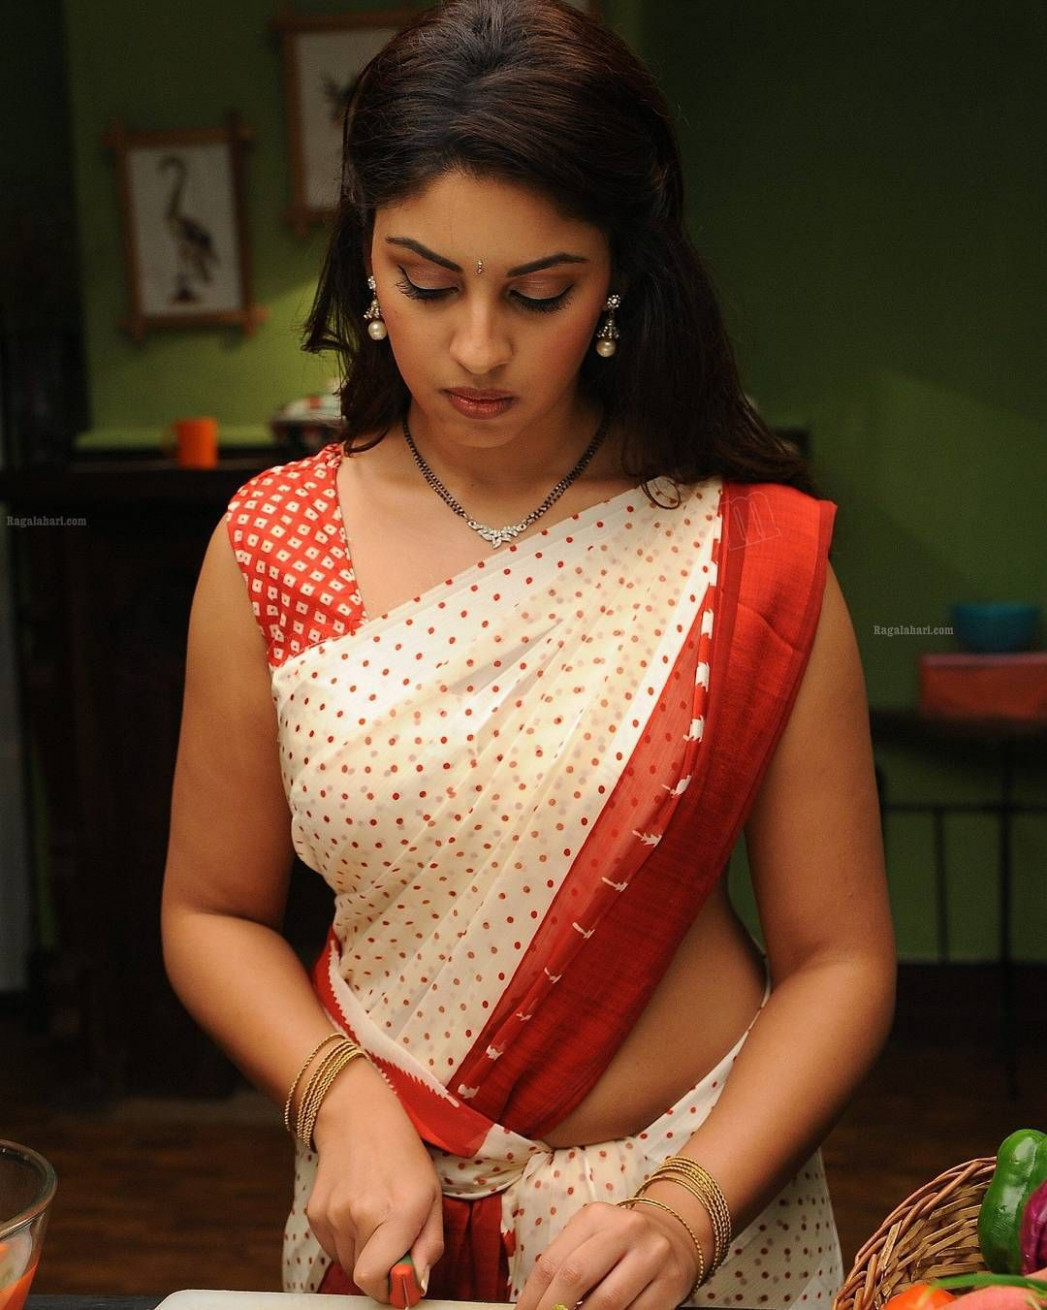 1,291 Likes, 21 Comments - Hot Saree Girls